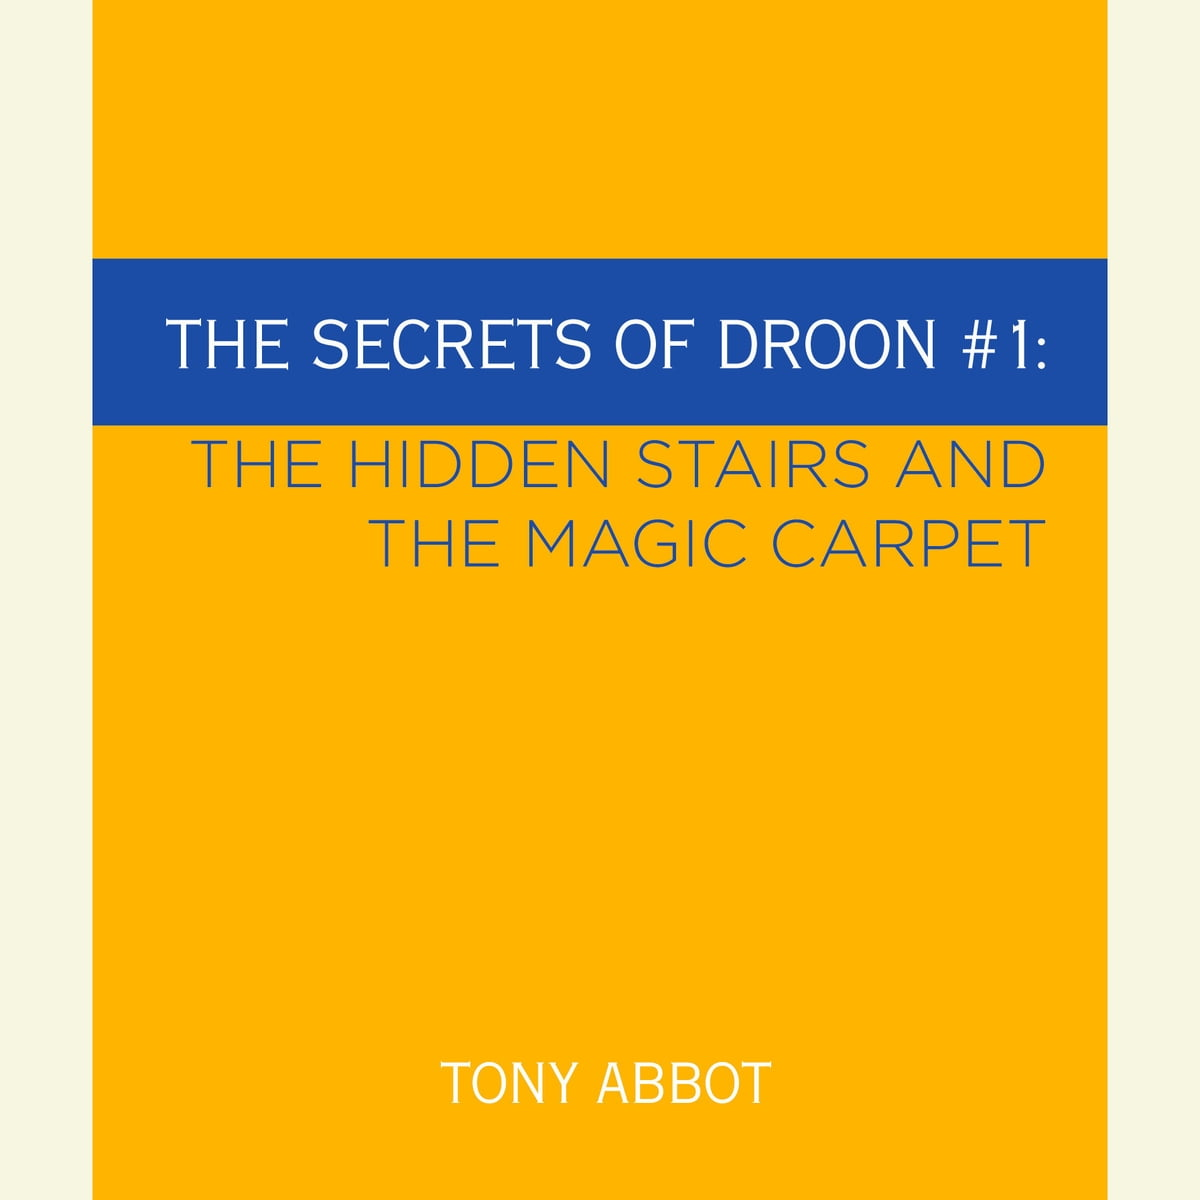 The Secrets of Droon #1: The Hidden Stairs and The Magic Carpet Audiobook  by Tony Abbott - 9780739338421 | Rakuten Kobo